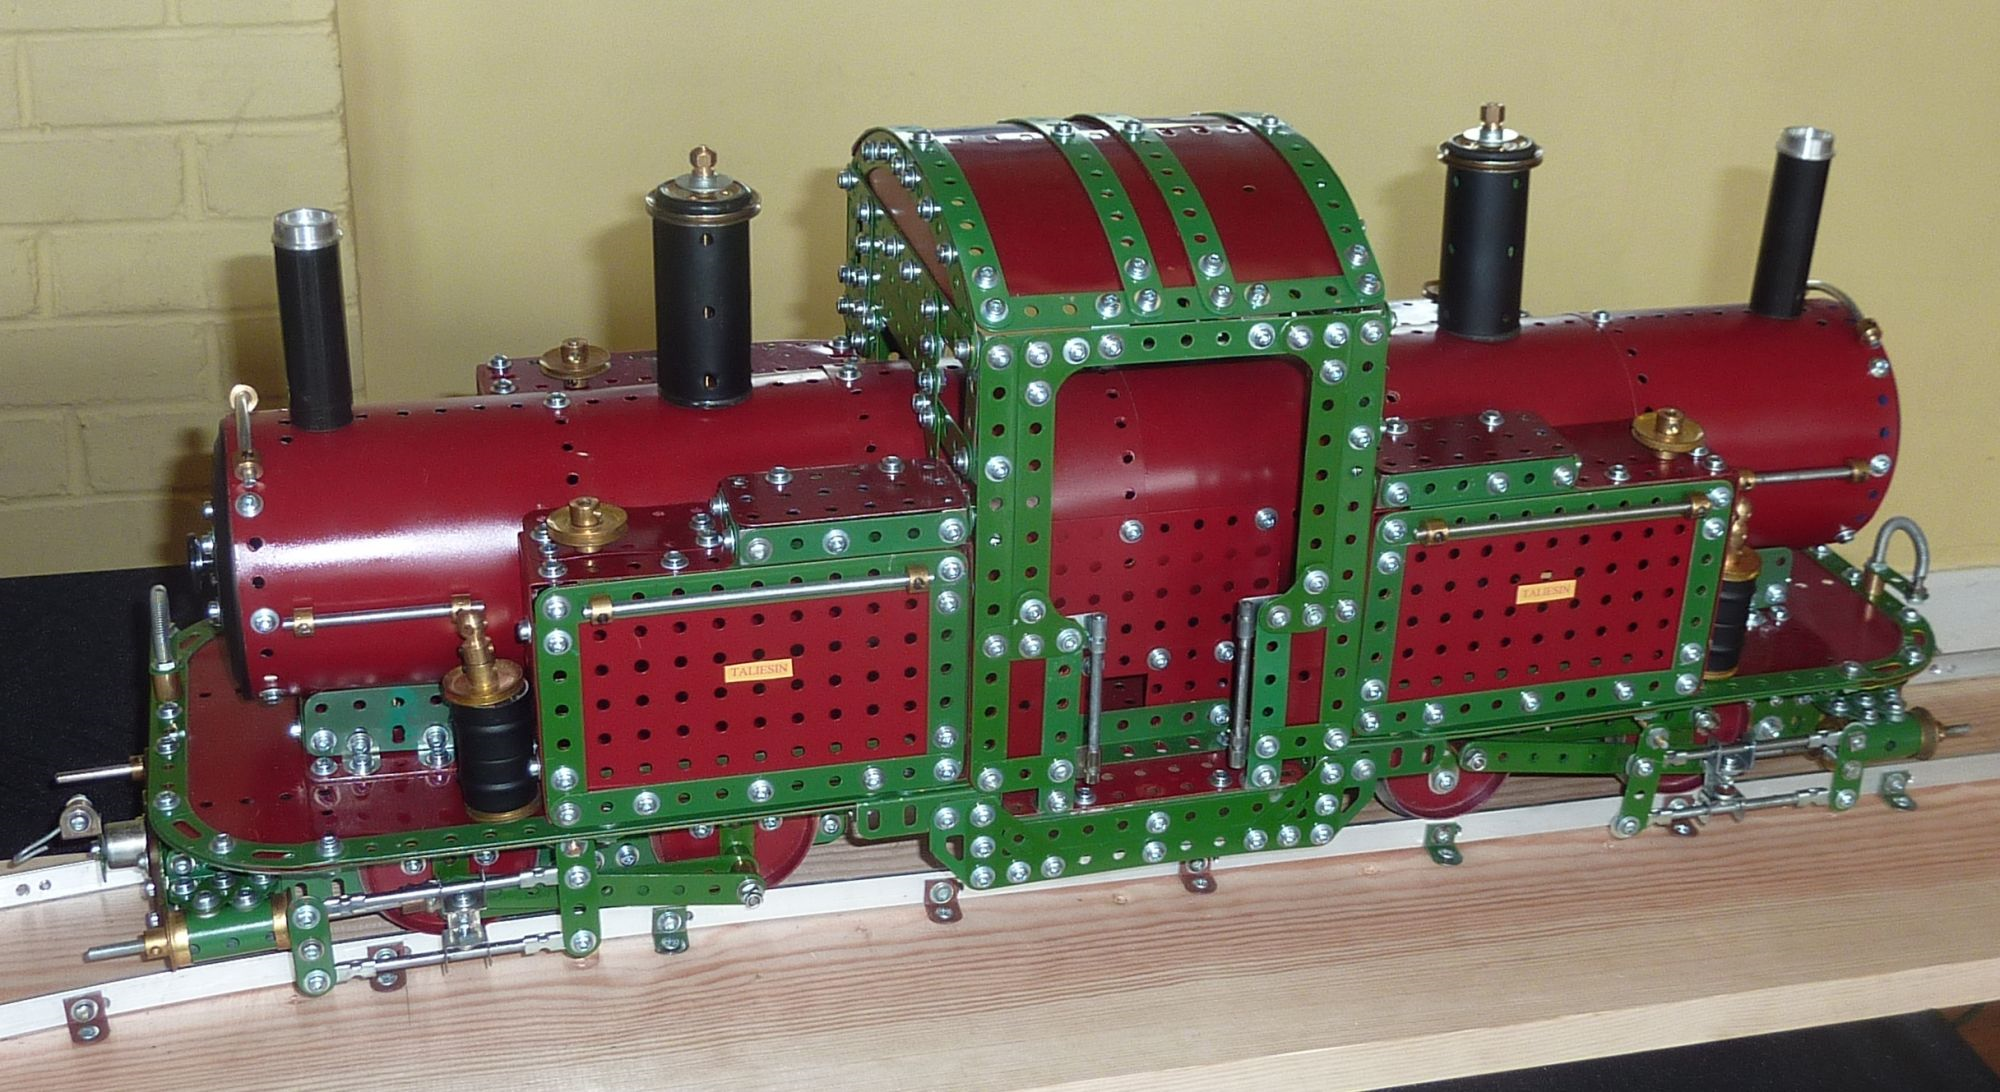 2011 May Exhibition Taleisin Locomotive by Terry Childs